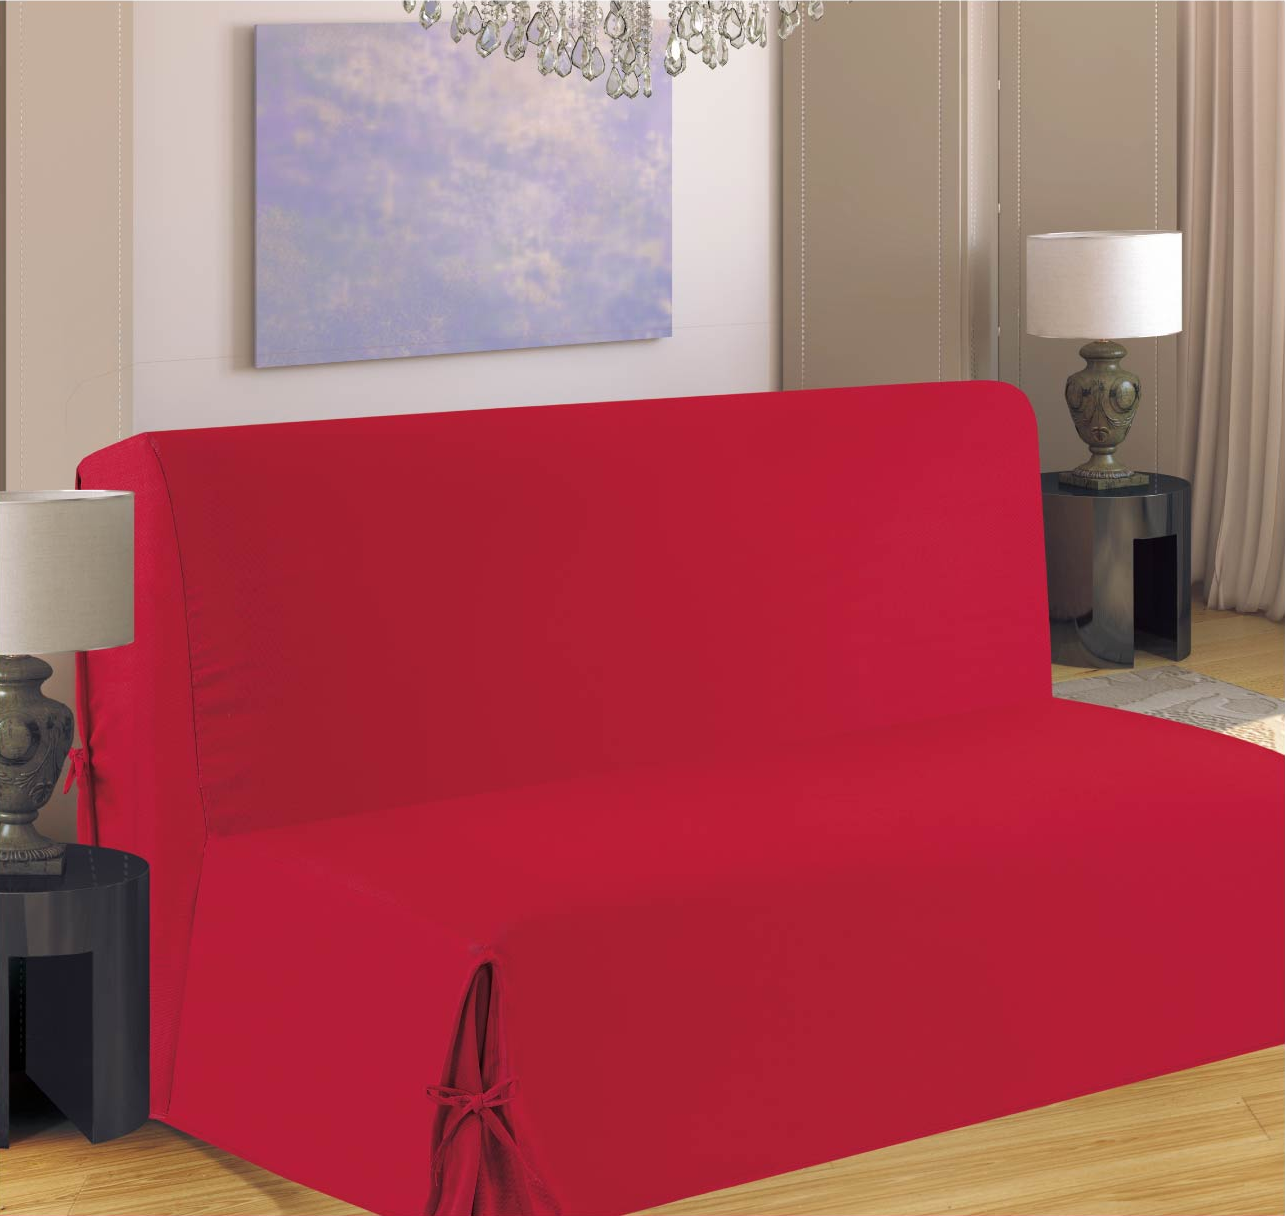 housse de clic clac nouettes rouge rouge homemaison. Black Bedroom Furniture Sets. Home Design Ideas